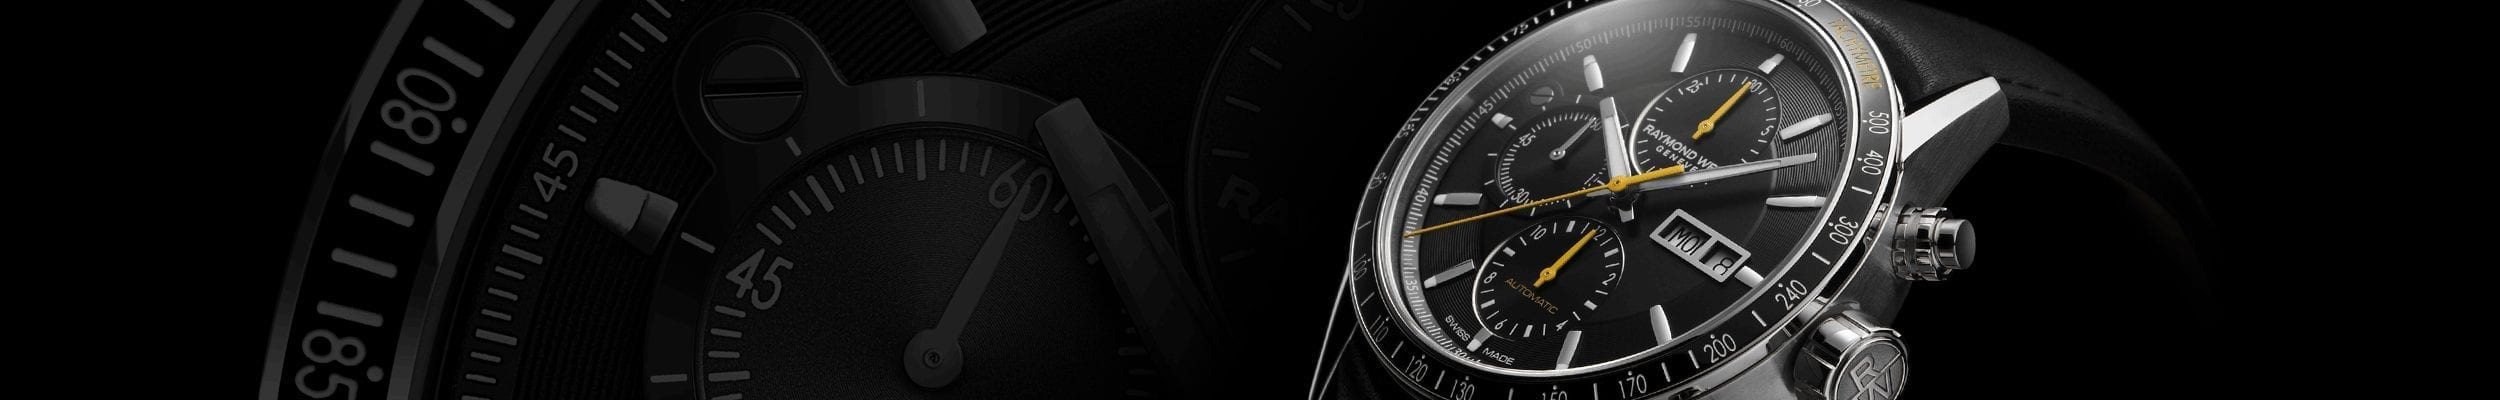 Banner image for Freelancer Chronograph page